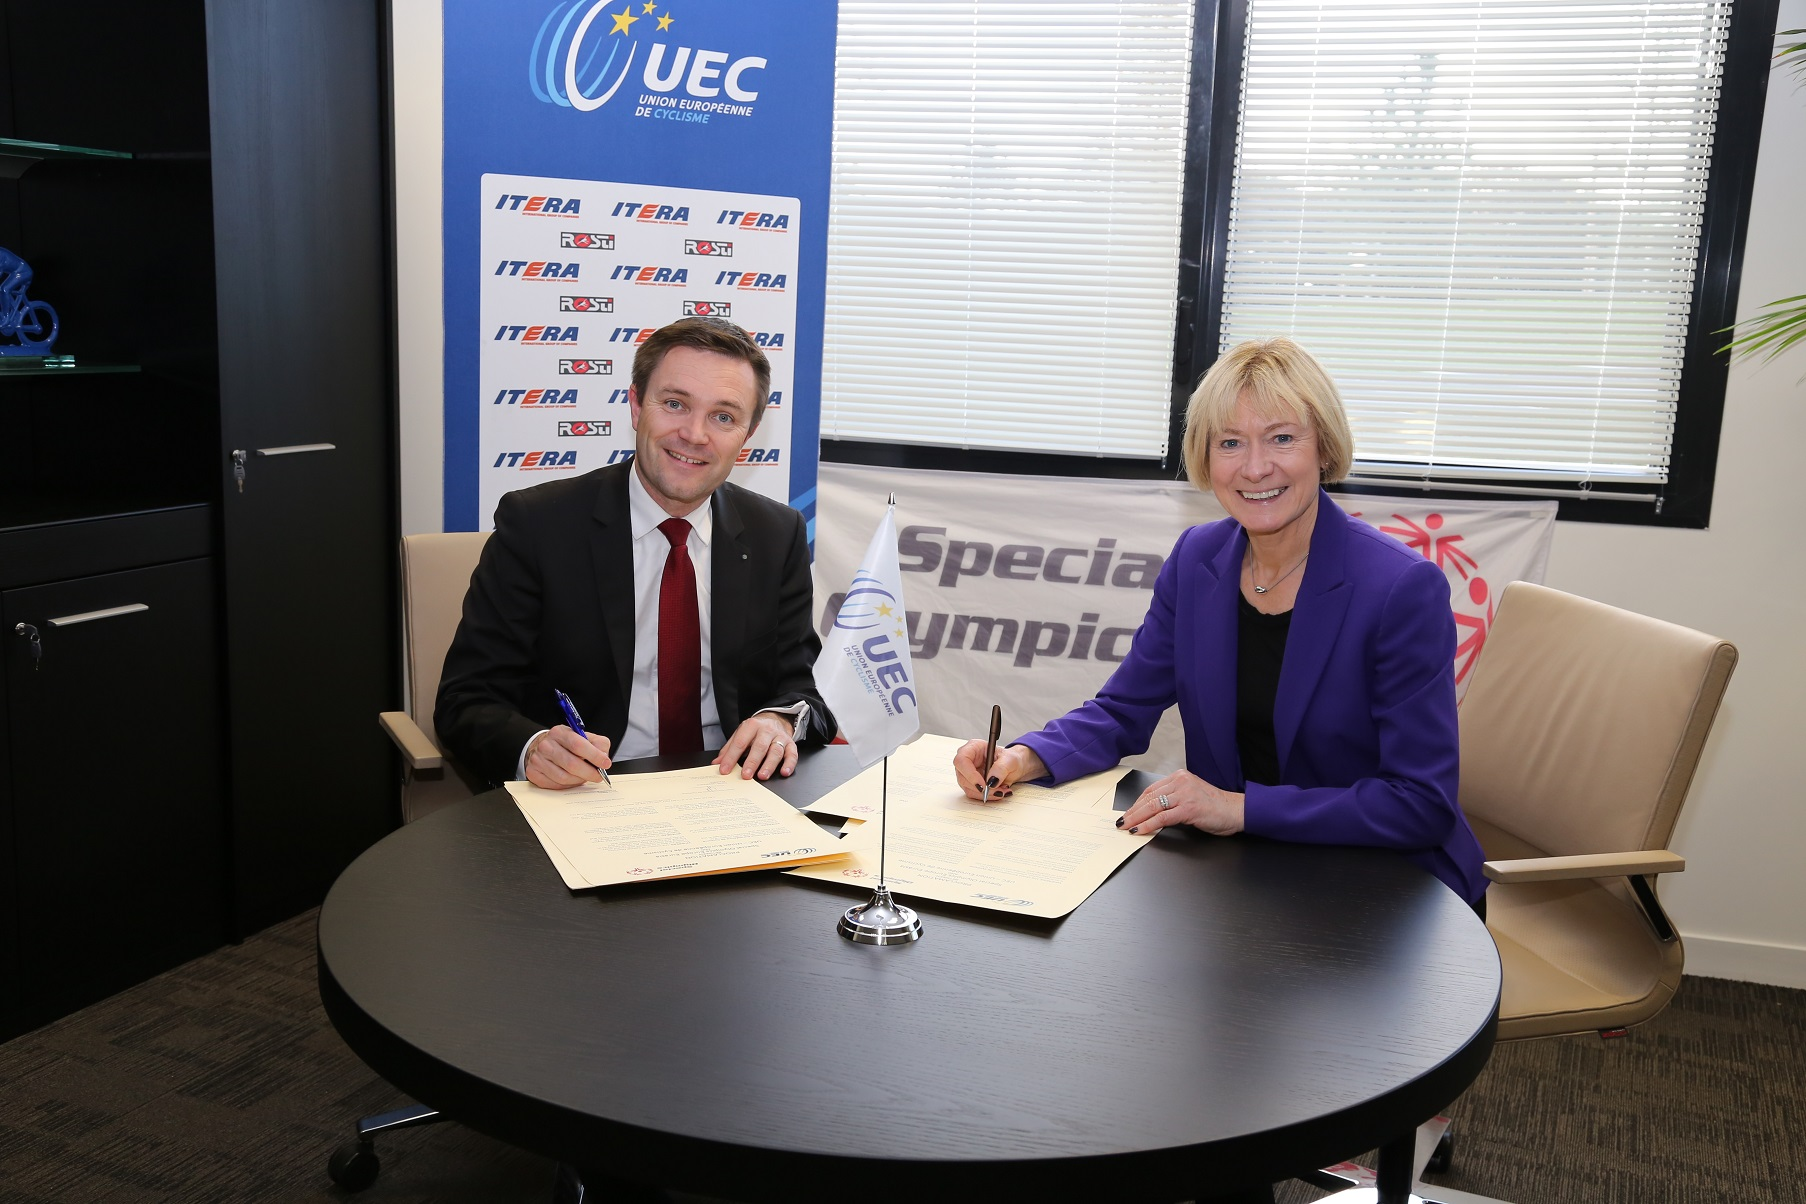 David Lappartient (left), President of the UEC, and Mary Davis (right), regional President of SOEE, at the signing ©UEC